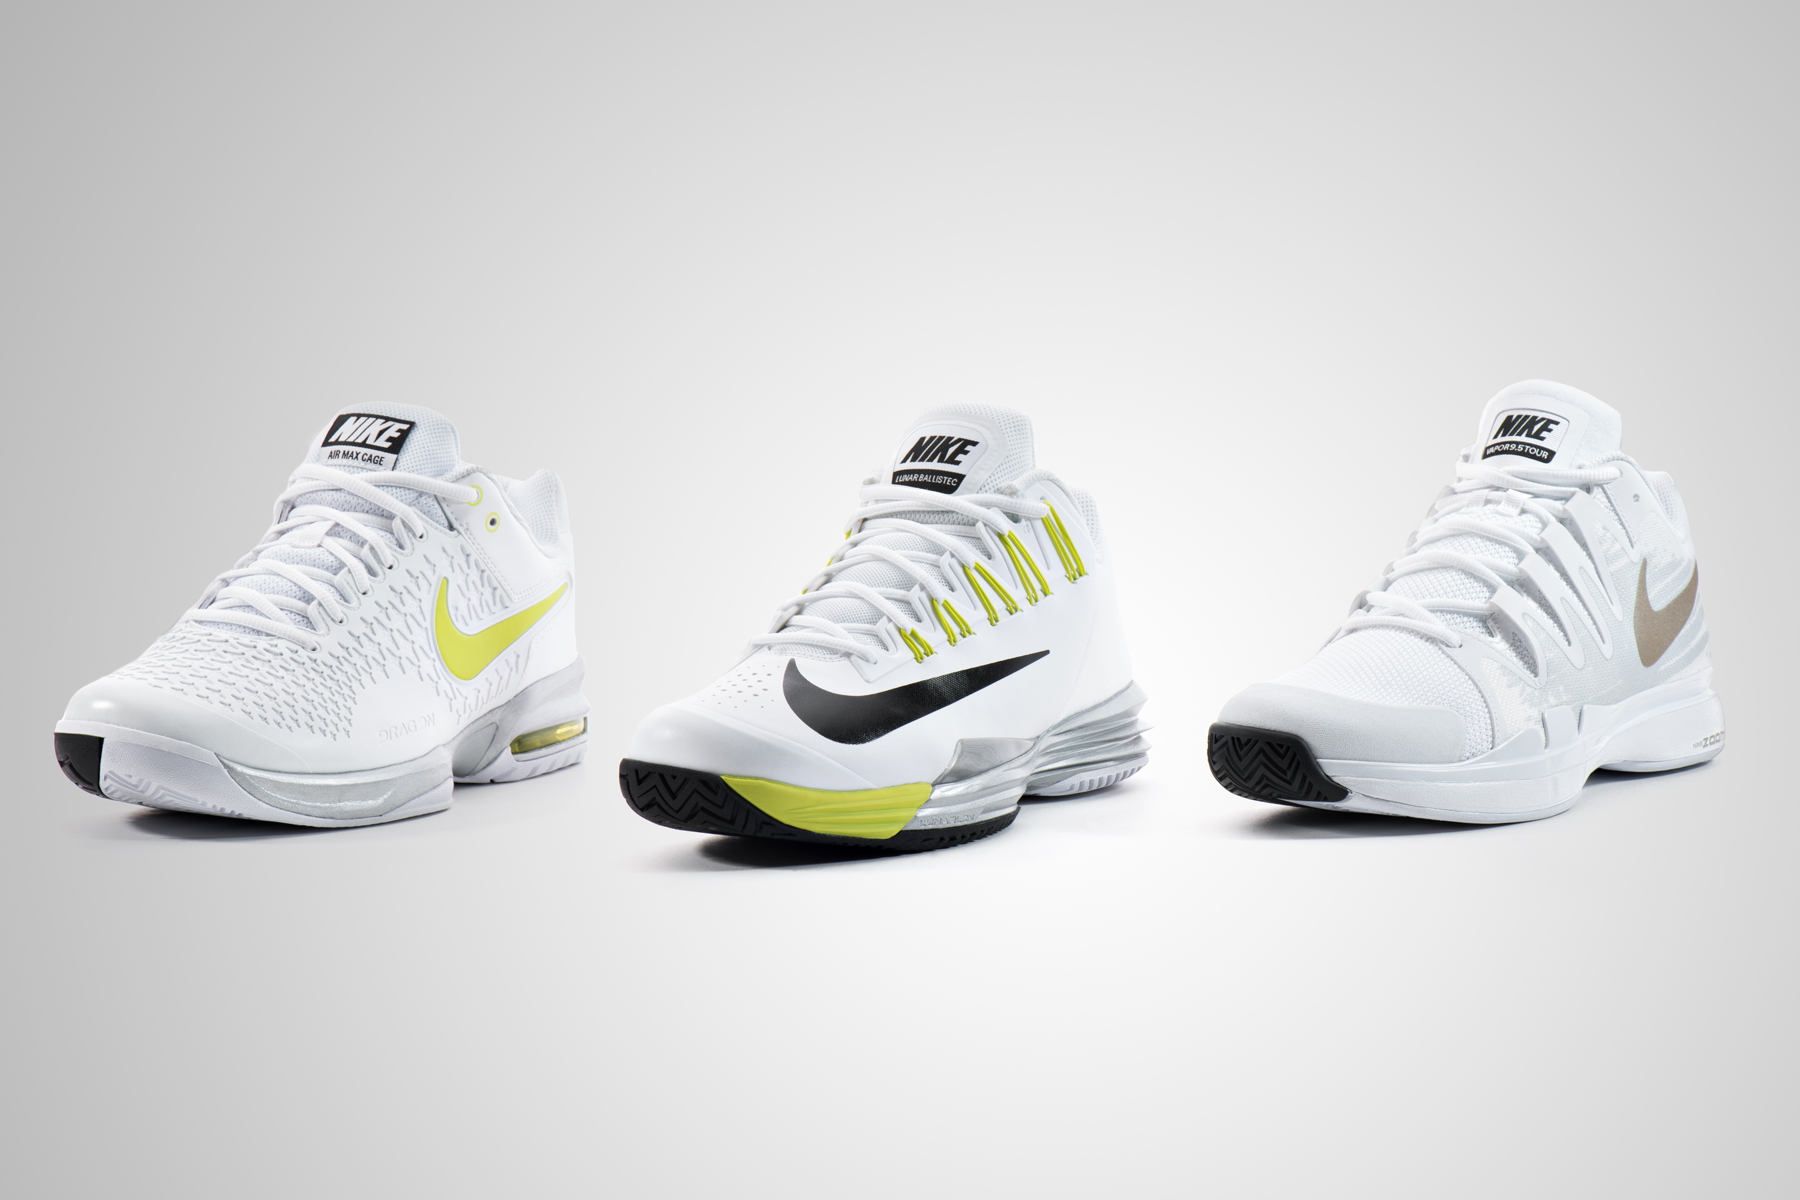 Nike Tennis 2014 Wimbledon Footwear Collection